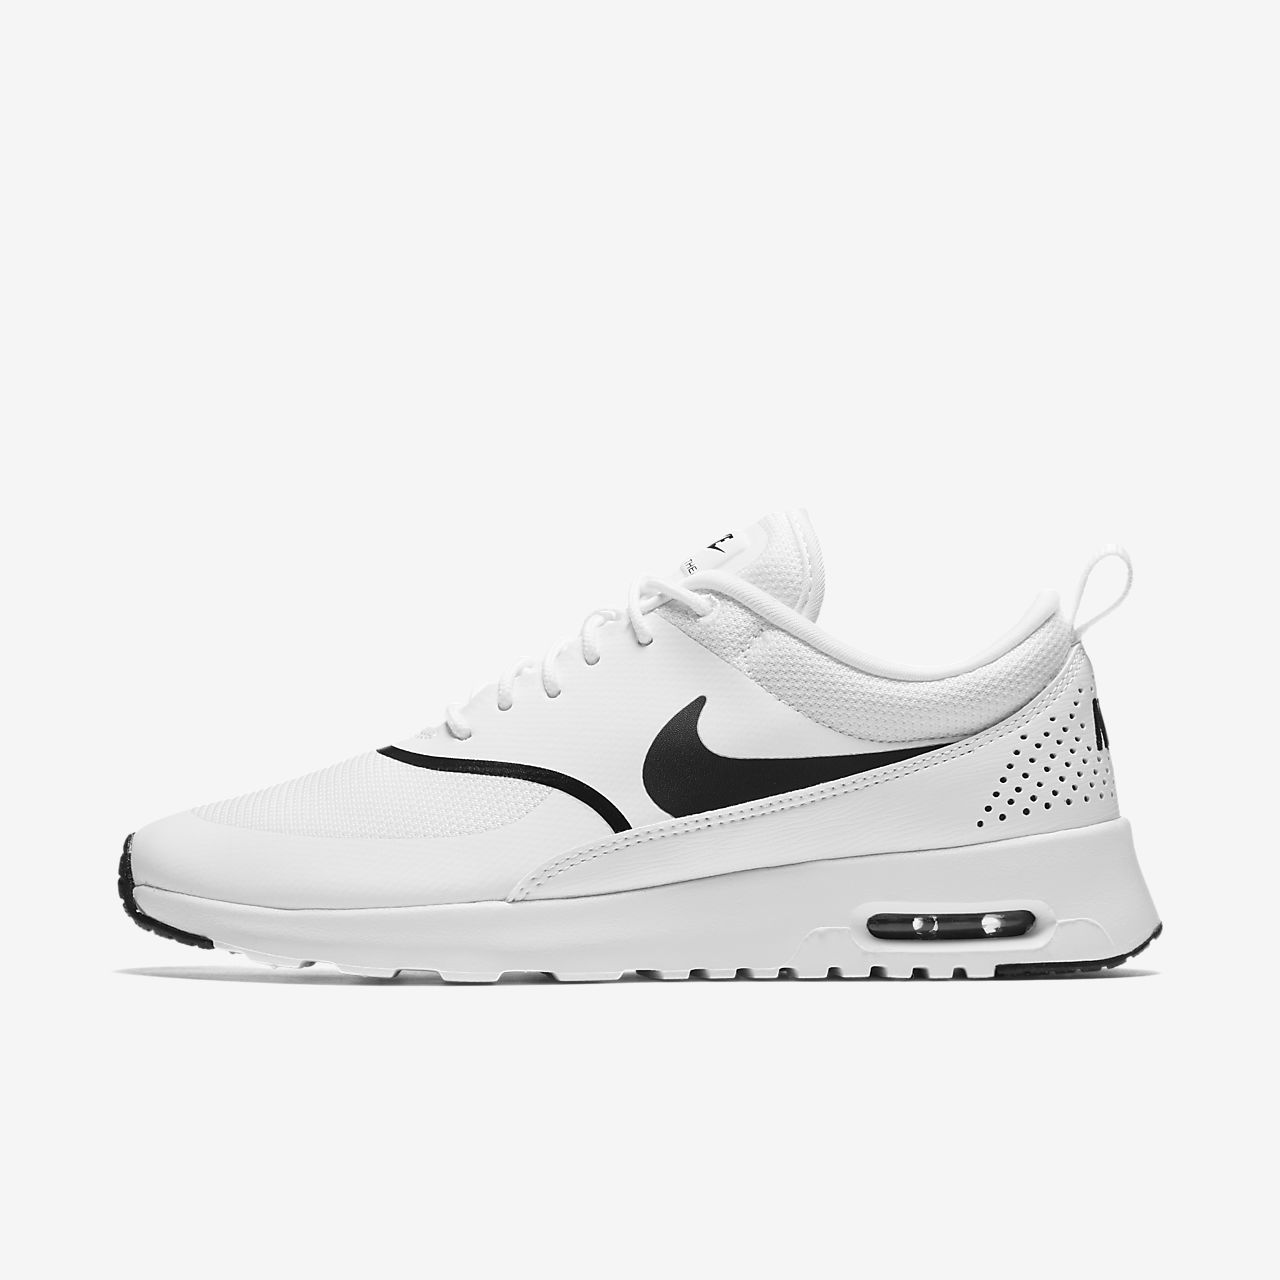 super popular adf02 91631 Nike Air Max Thea Women's Shoe. Nike.com GB